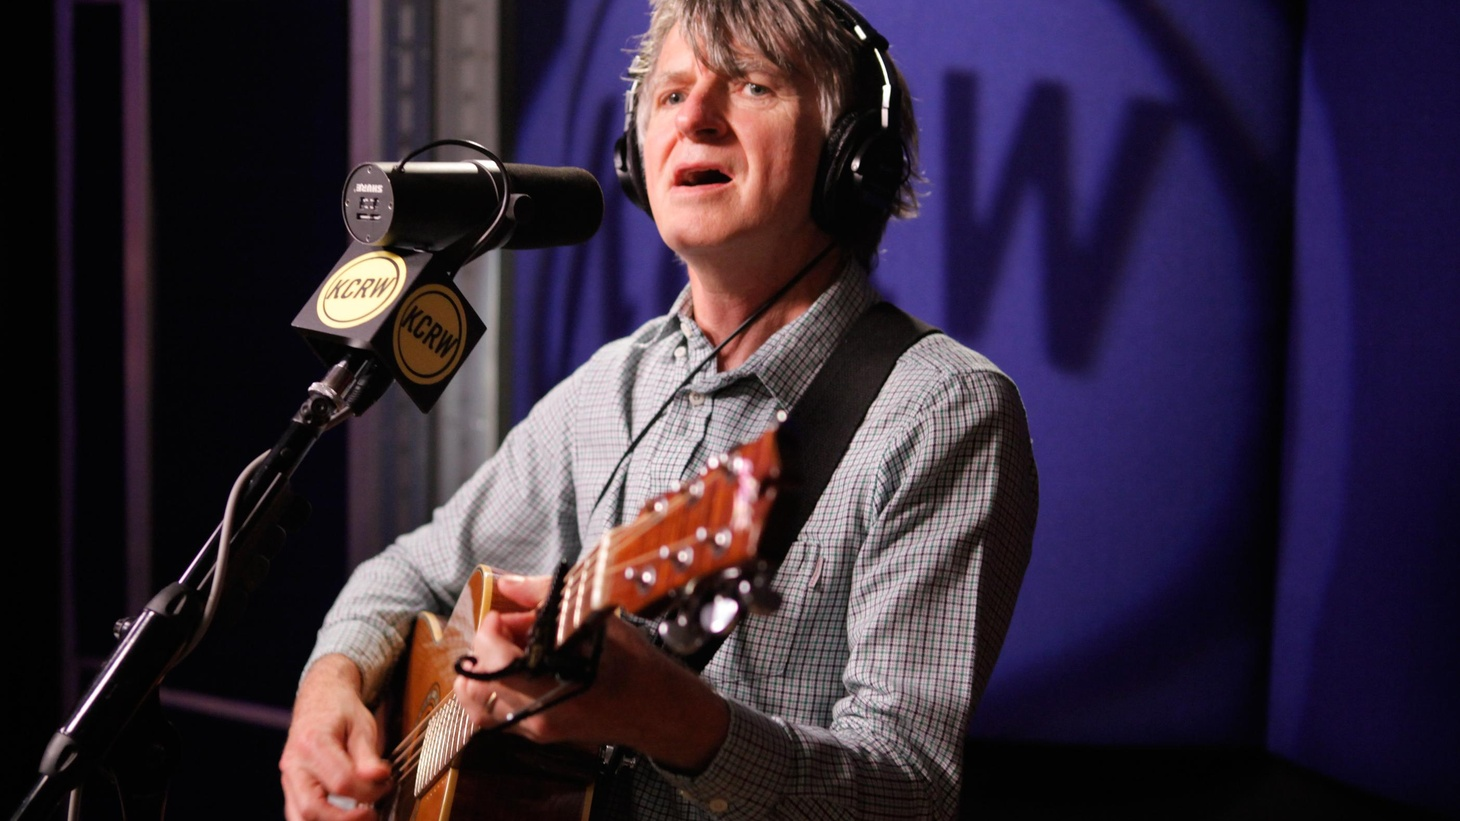 New Zealand's Neil Finn played a gorgeous live session on Morning Becomes Eclectic last year, including songs he will release on his forthcoming album Dizzy Heights.